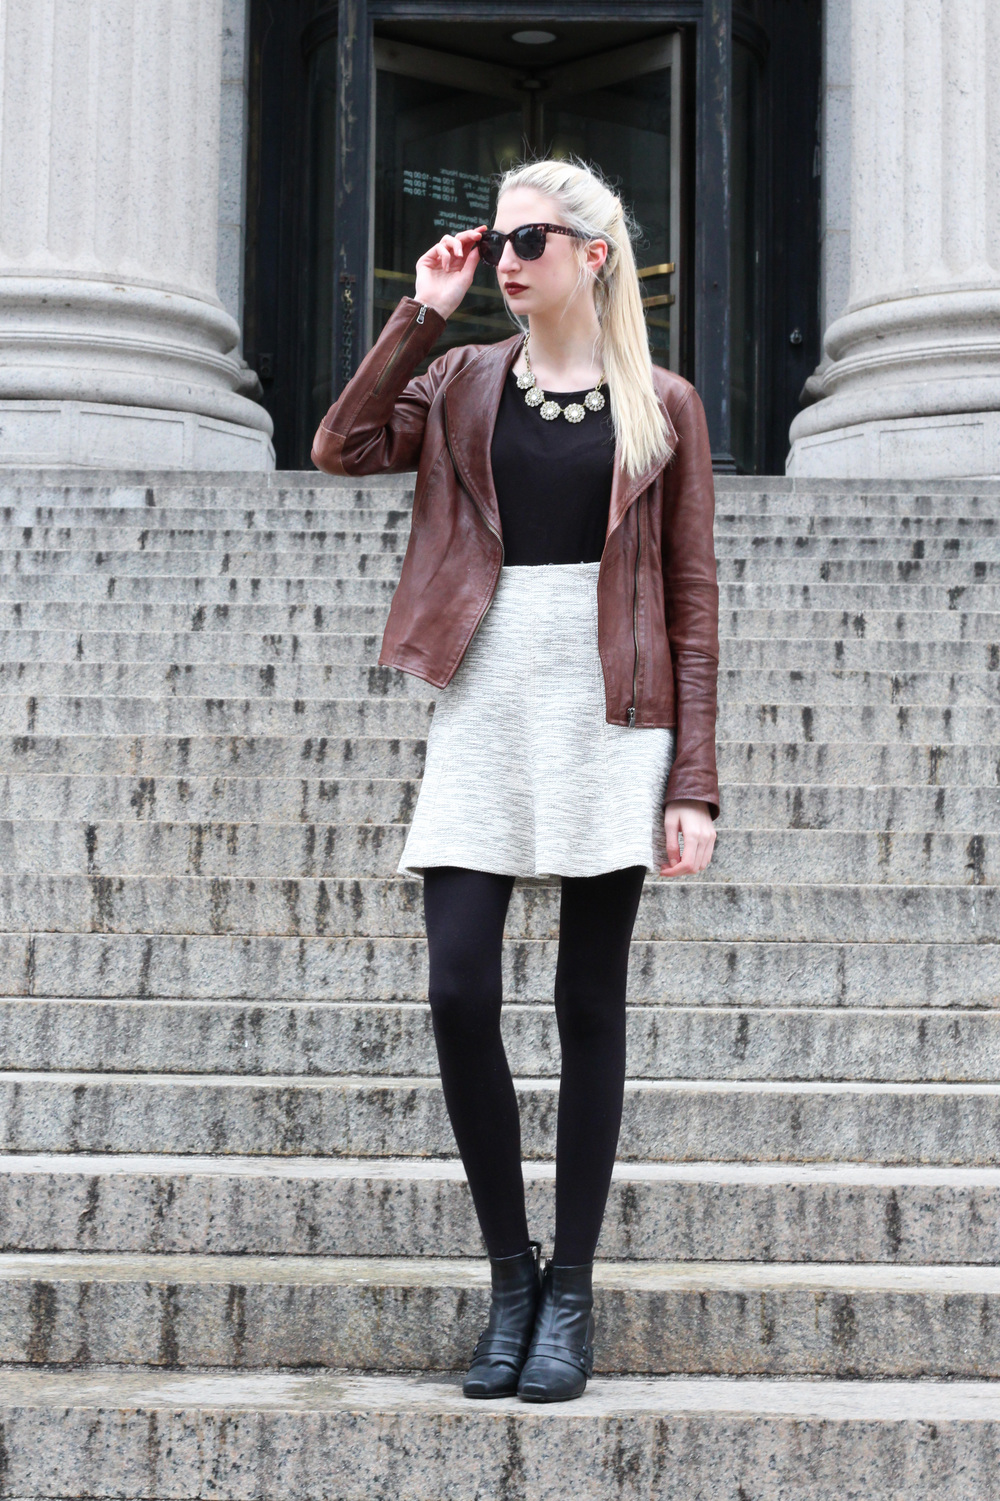 LOFT tweed knit circle skirt, J.Crew Factory crystal circle necklace, loft square sunglasses, black heeled ankle boots, Clinique Color + Primer in Cola Pop, leather jacket - Southern New Yorker - Audra Koch